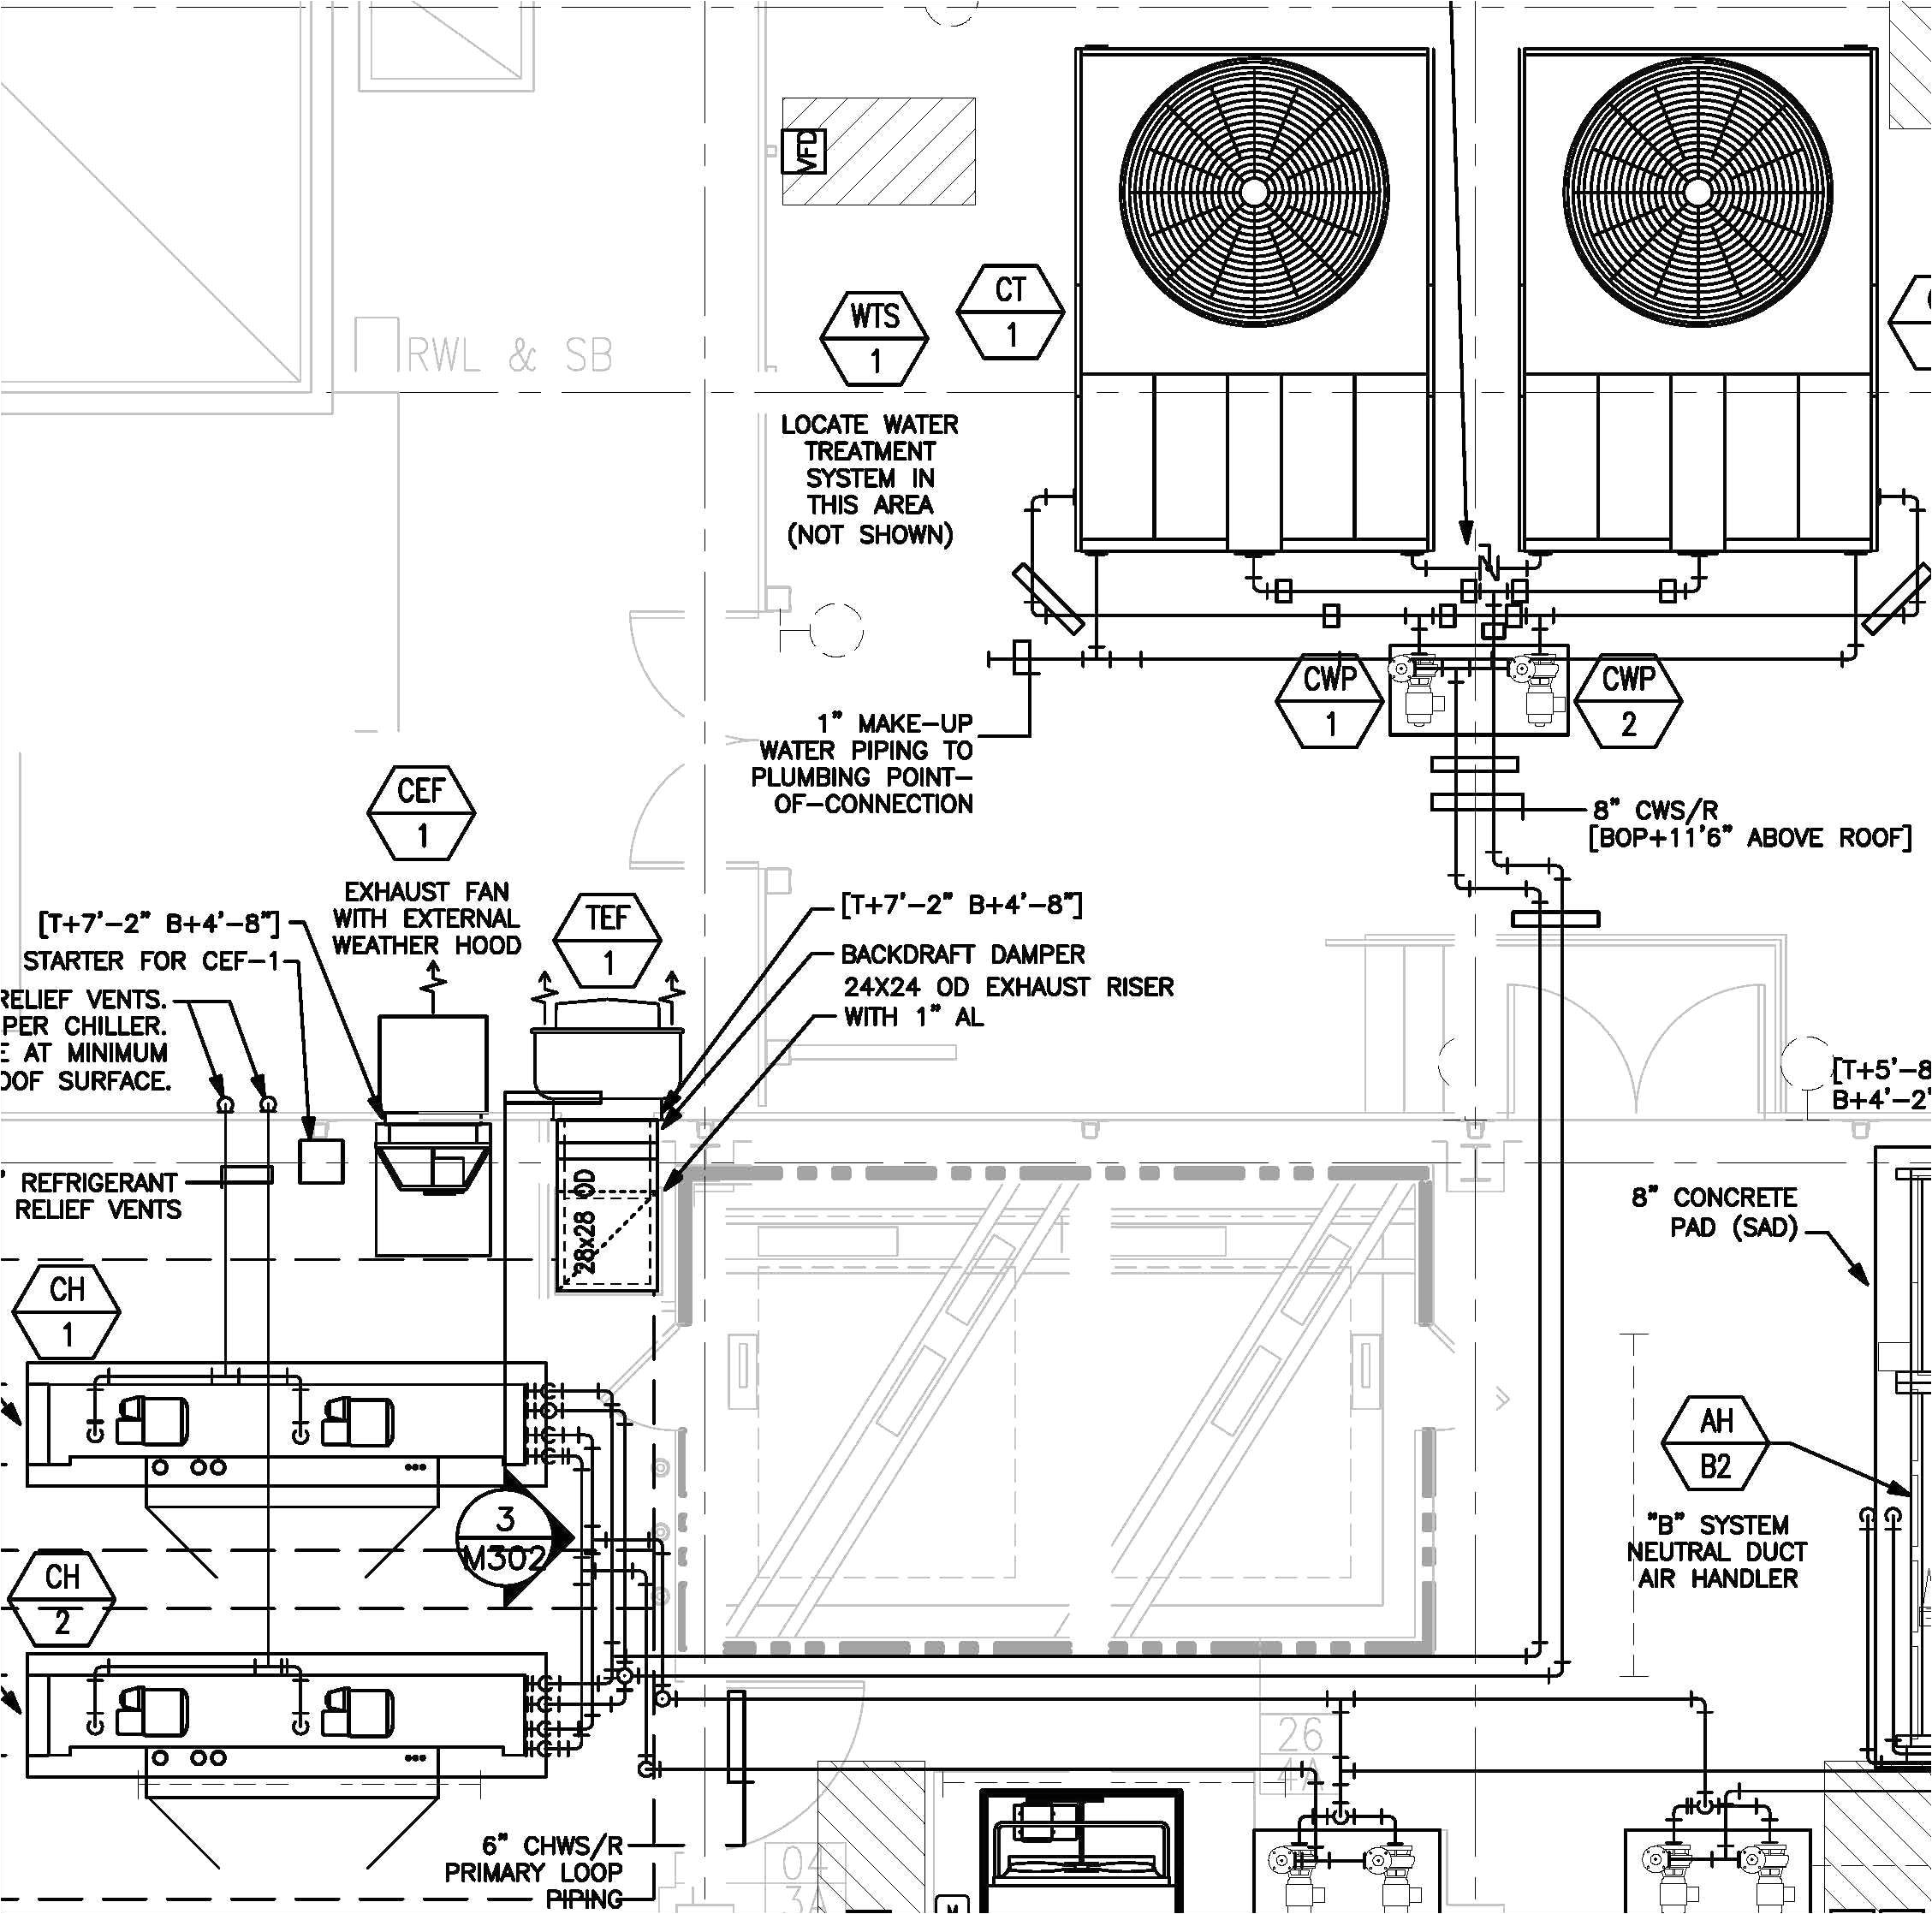 Simple Electrical Wiring Diagrams 5 Best Images Of Basic Electrical Wiring Diagrams Bathroom Wiring